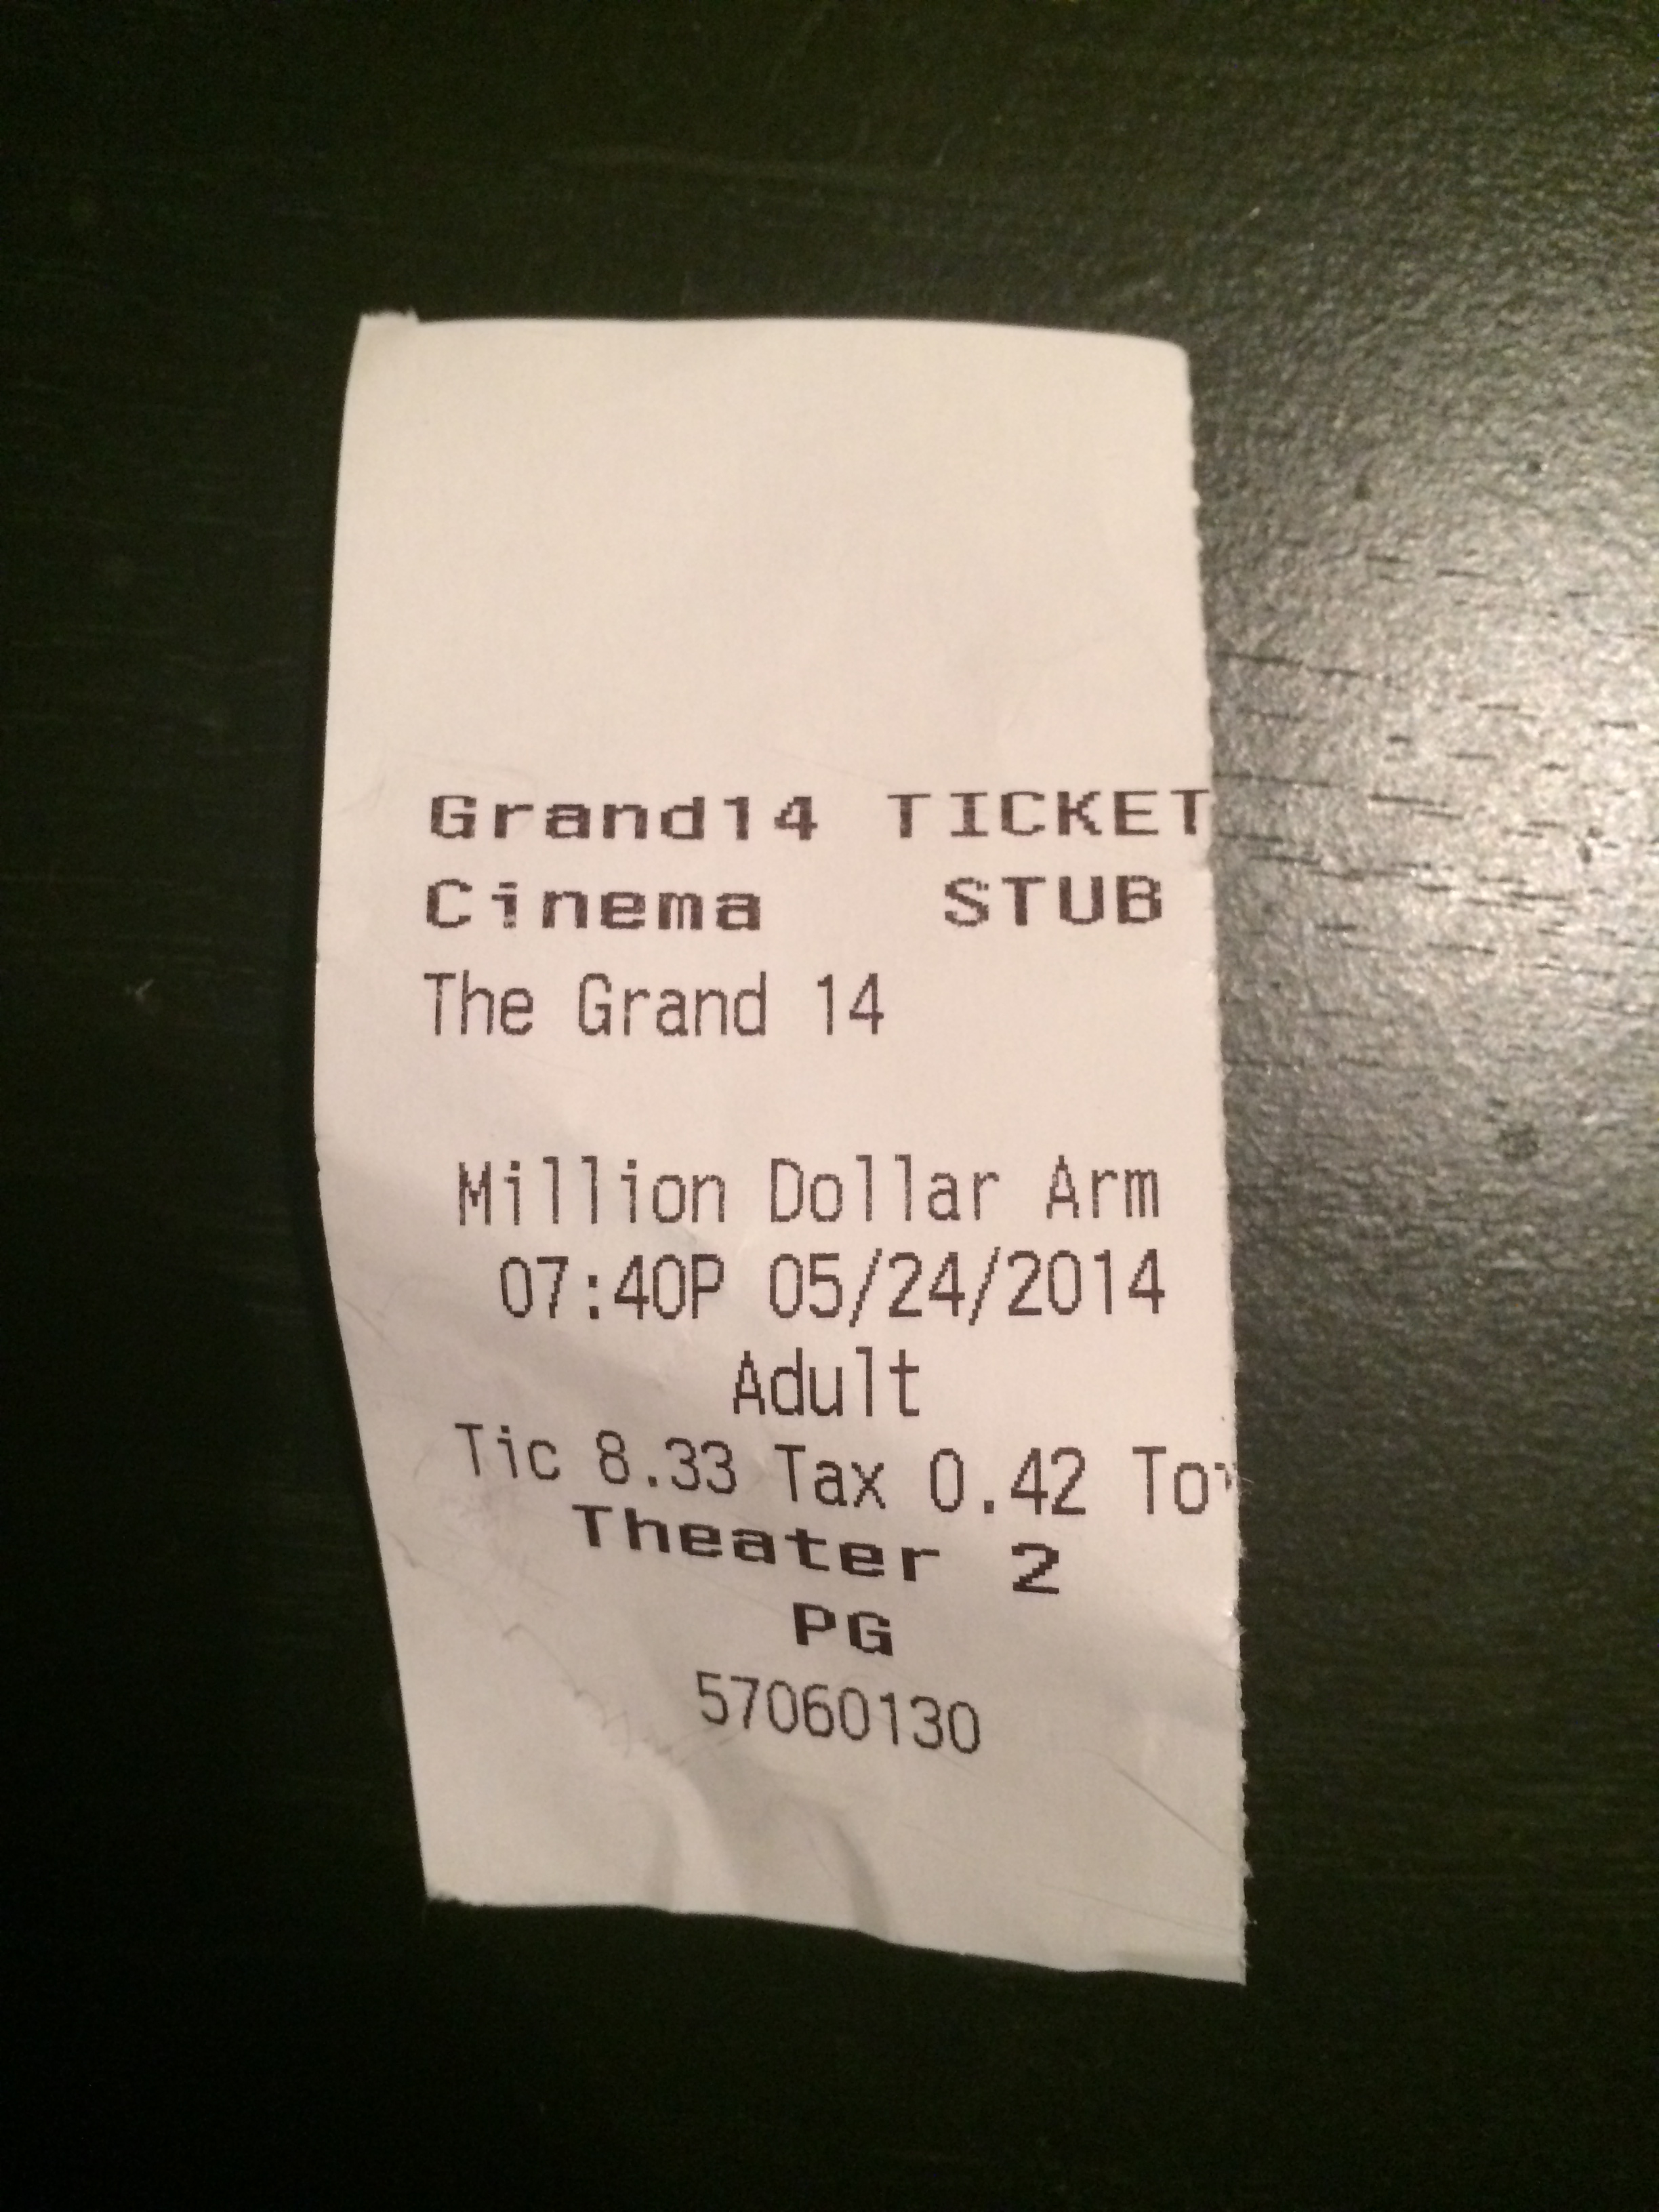 Proof that I actually went and saw the movie.